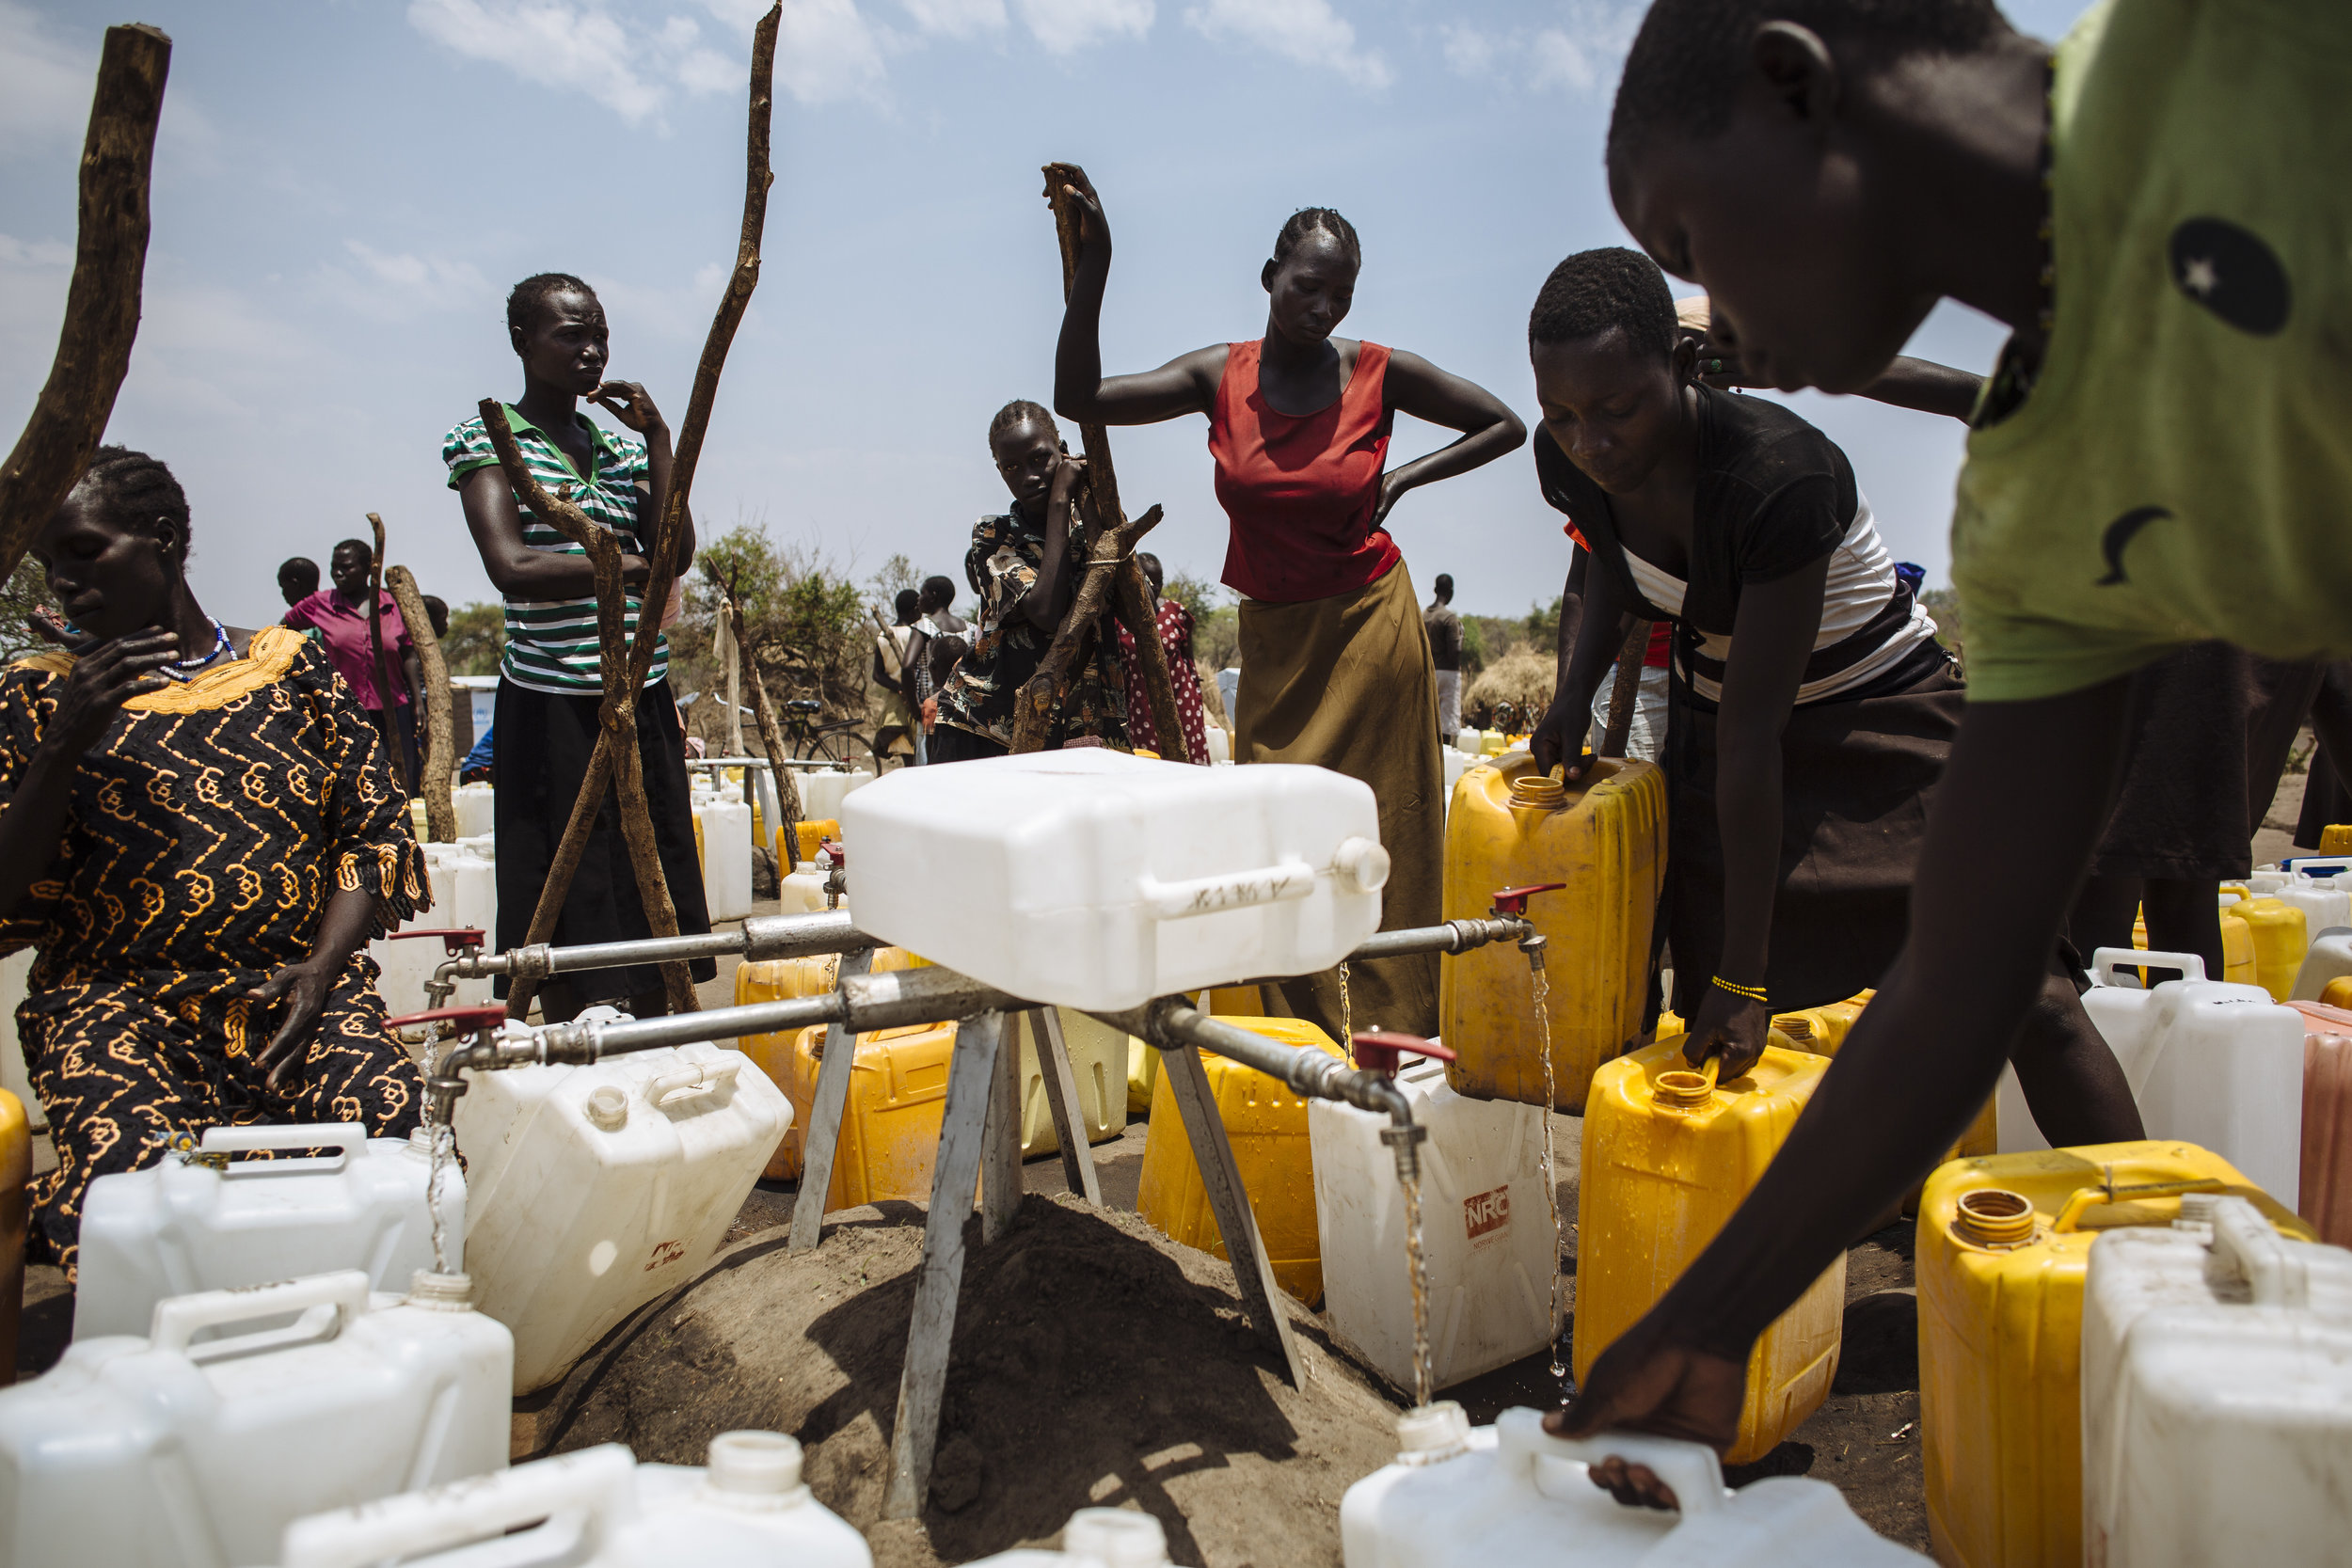 South Sudanese refugees fill jerry cans with water from a water point in Bidibidi refugee settlement, Yumbe District, Northern Region, Uganda. Fetching water often involves hours of waiting due to high demand, despite the tank being filled twice daily by a water truck.